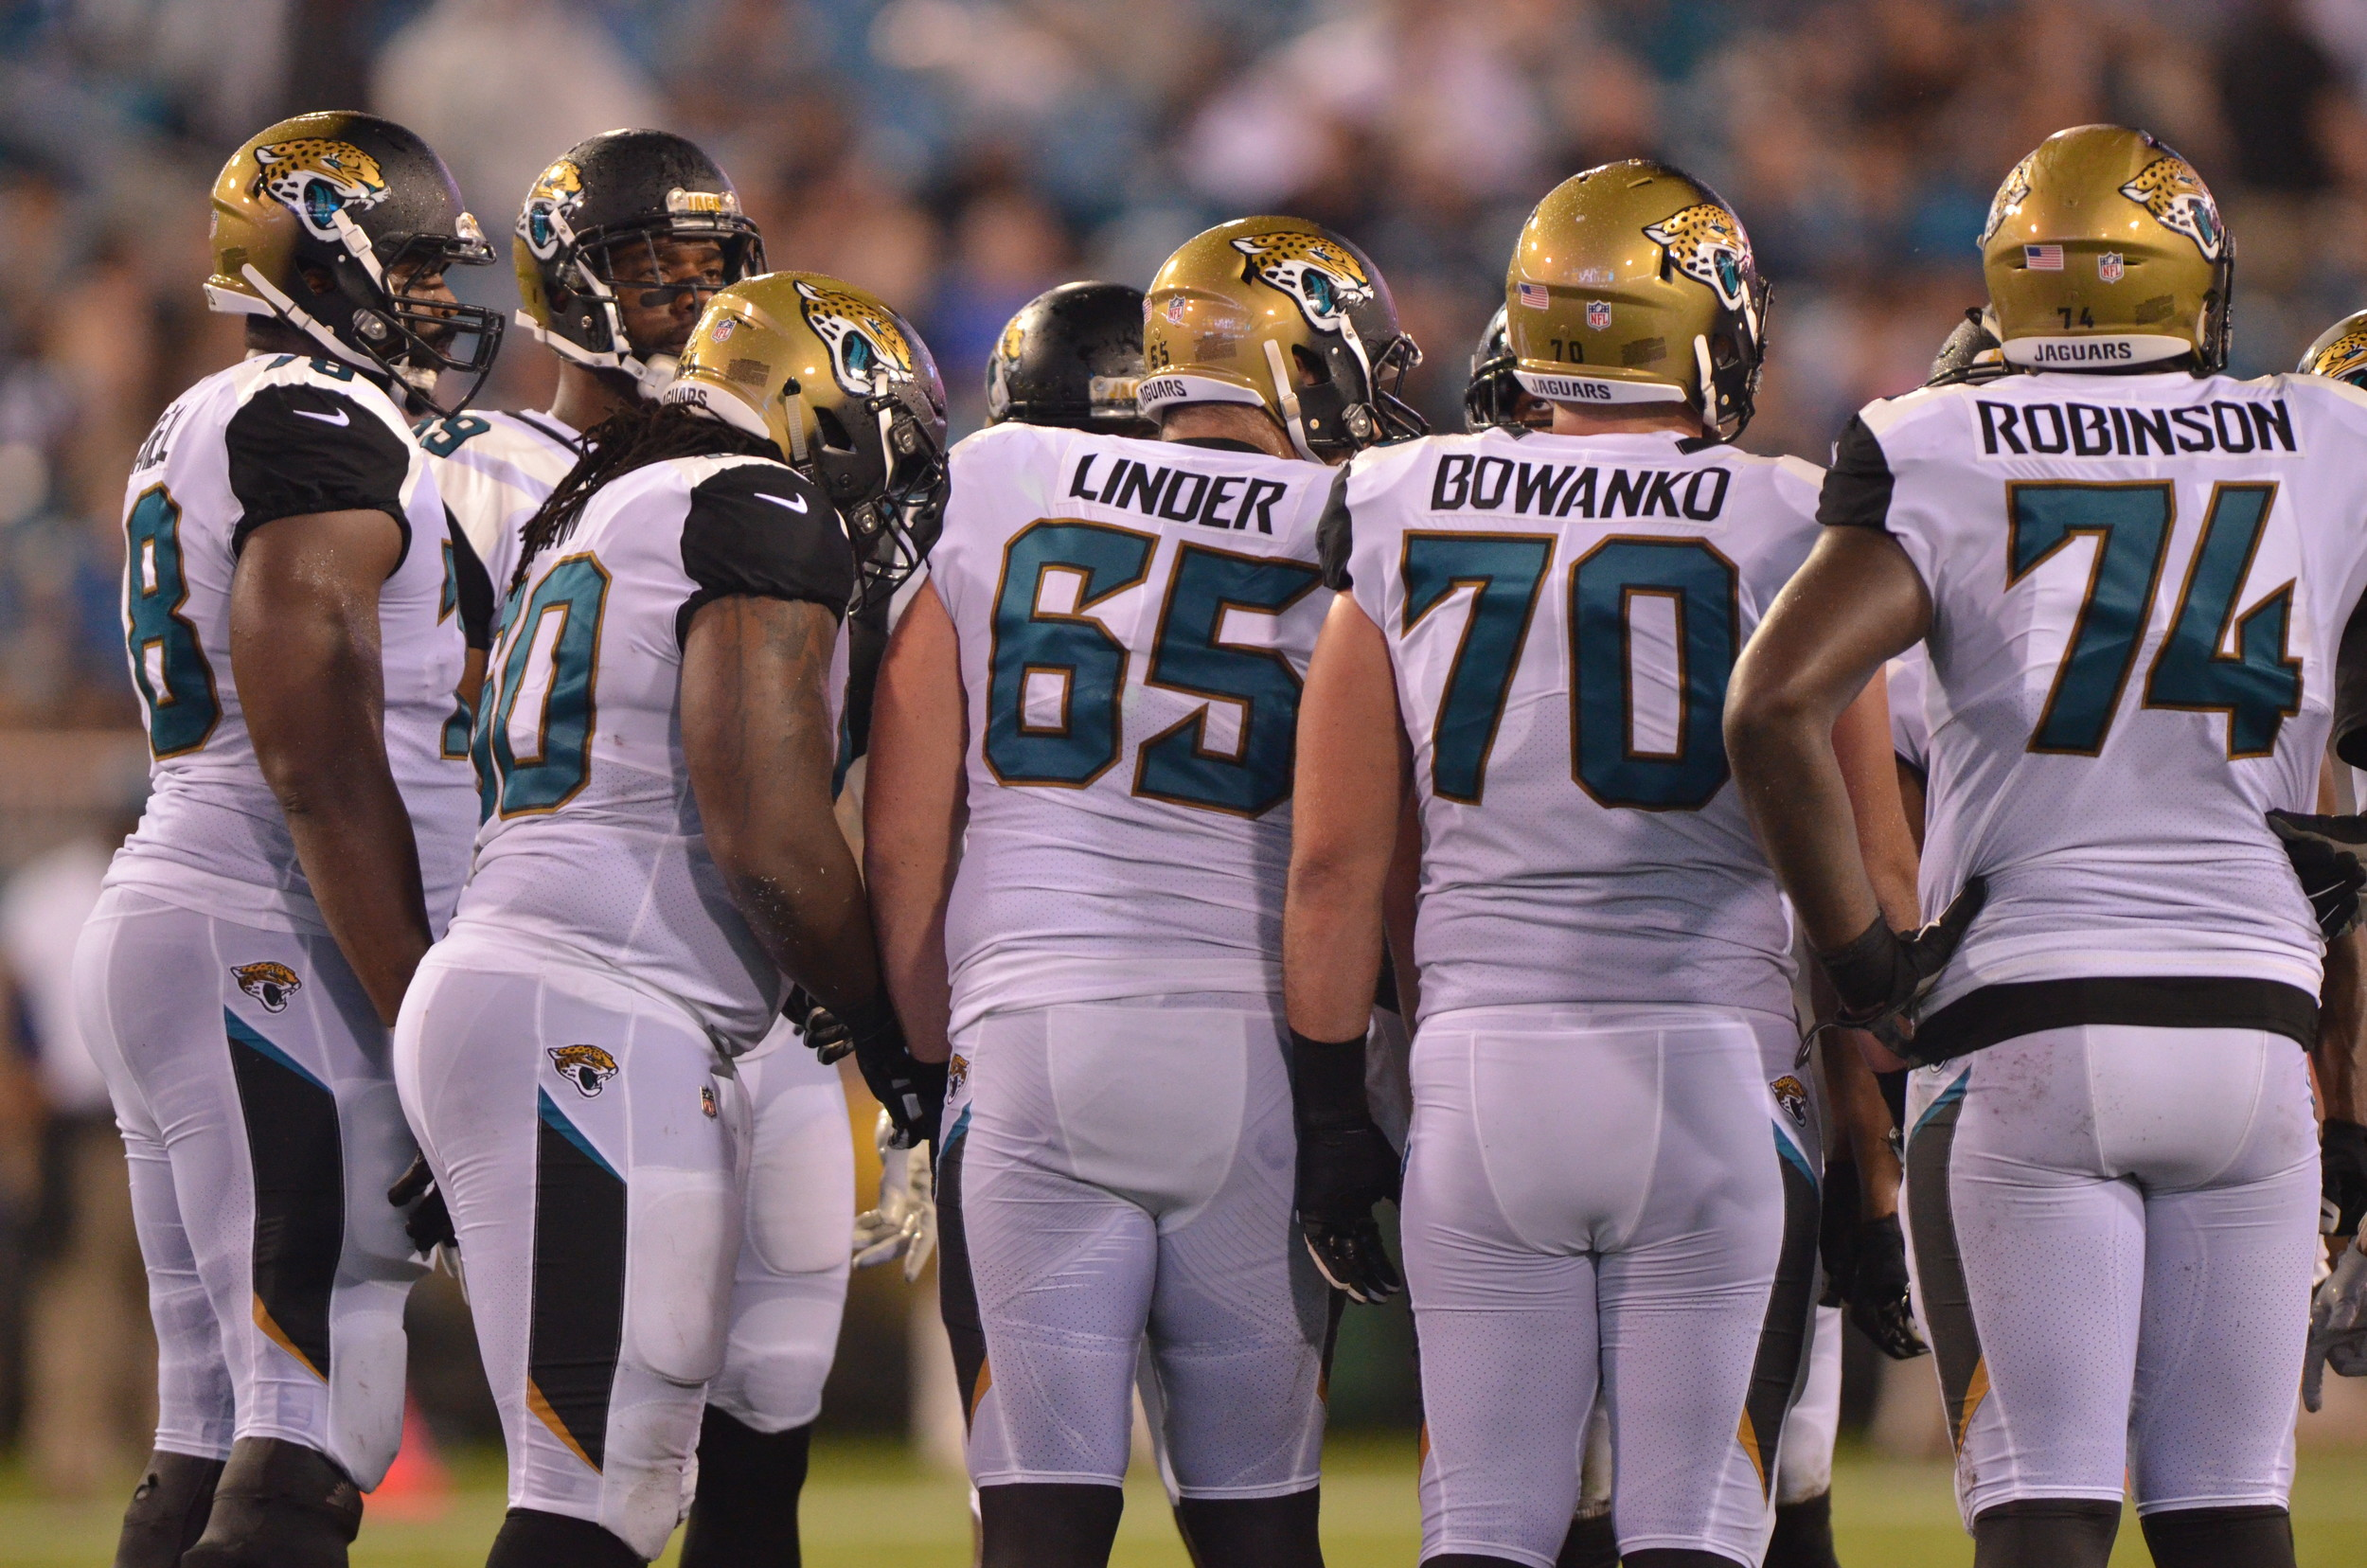 The Jaguars offensive line was responsible for five penalties and allowed three sacks on quarterback Chad Henne in the preseason loss to the Panthers.